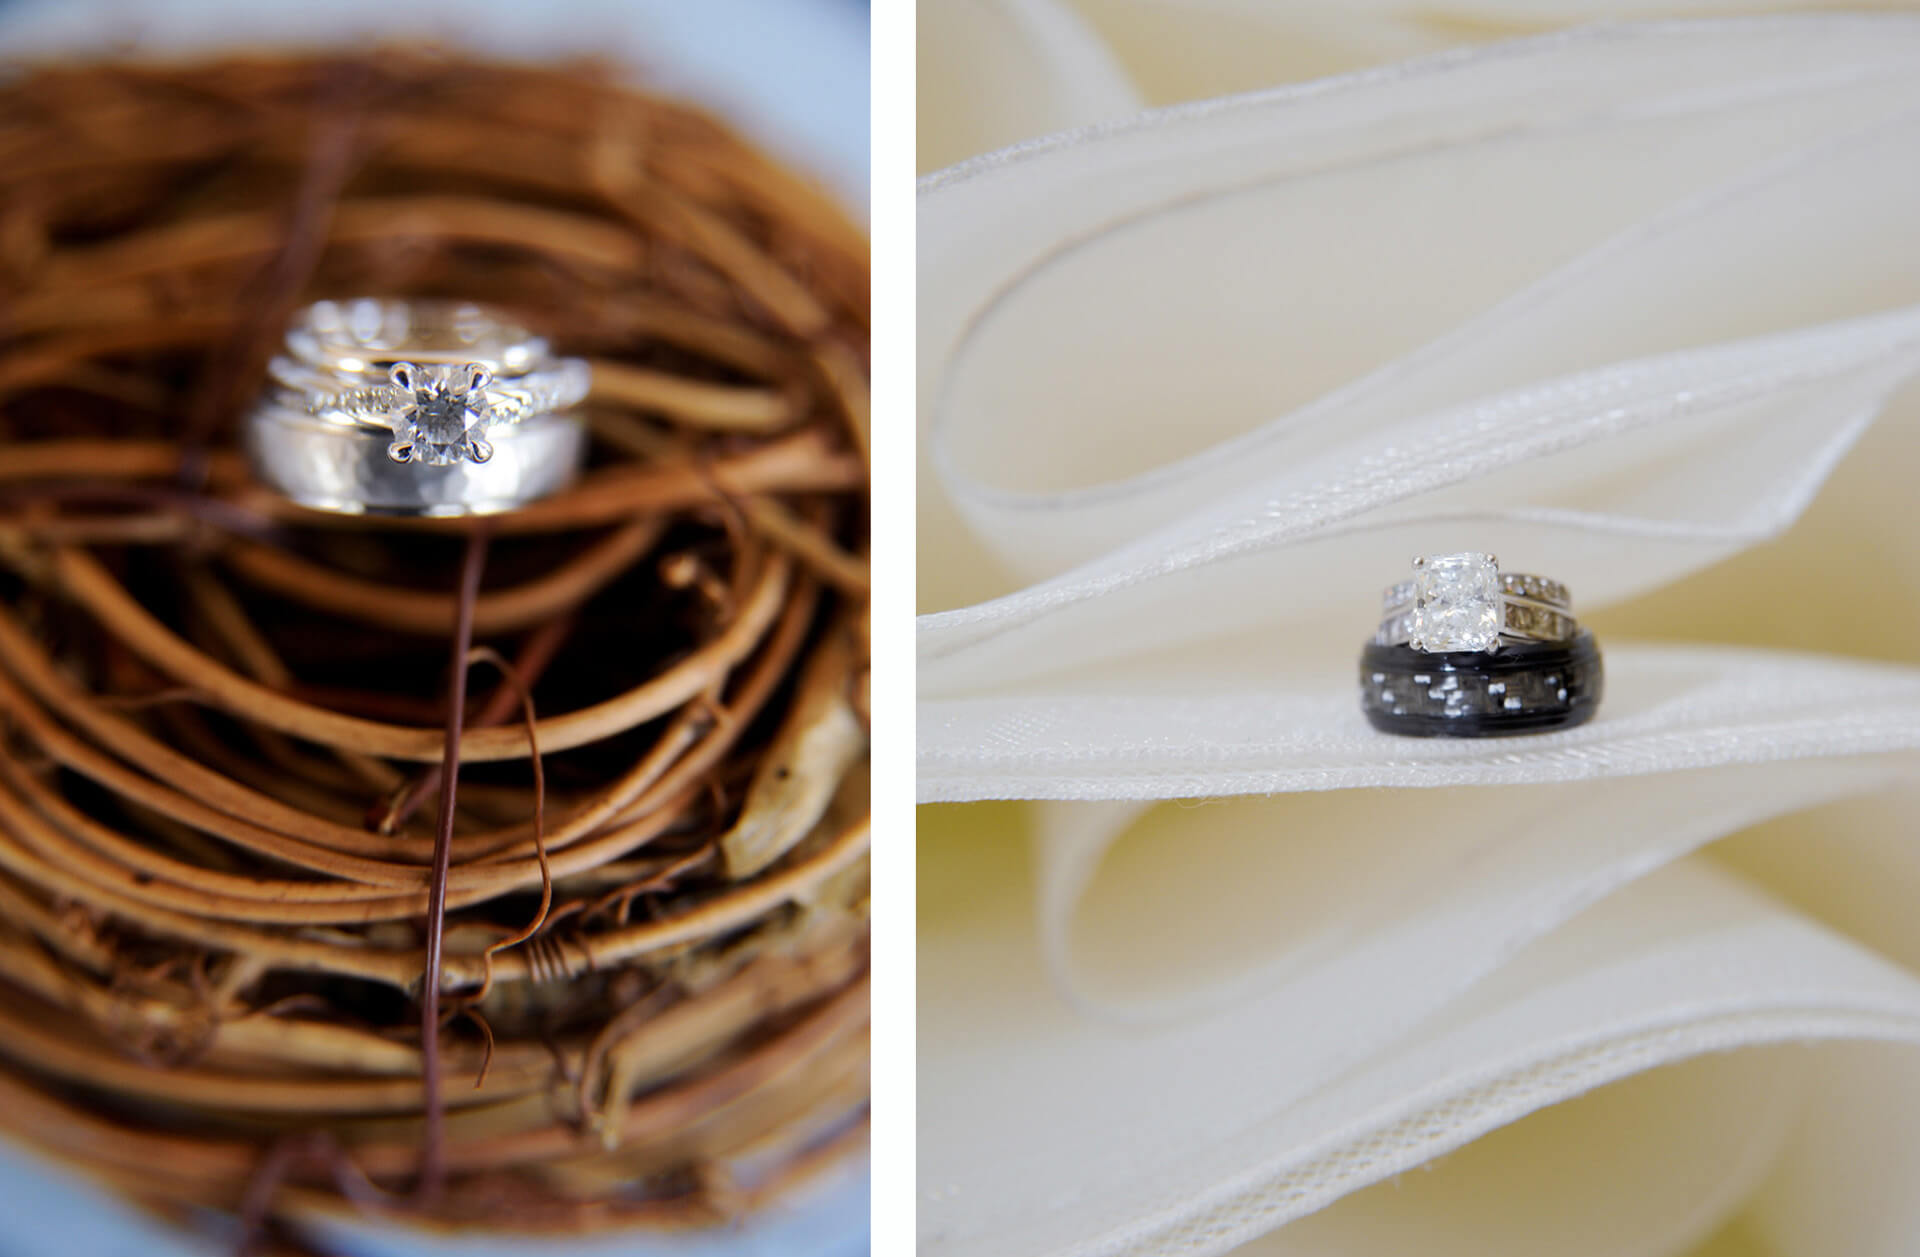 It's always fun to showcase wedding and engagement rings with found items on the day of the wedding, like these two rings from weddings in Metro Detroit, Michigan.